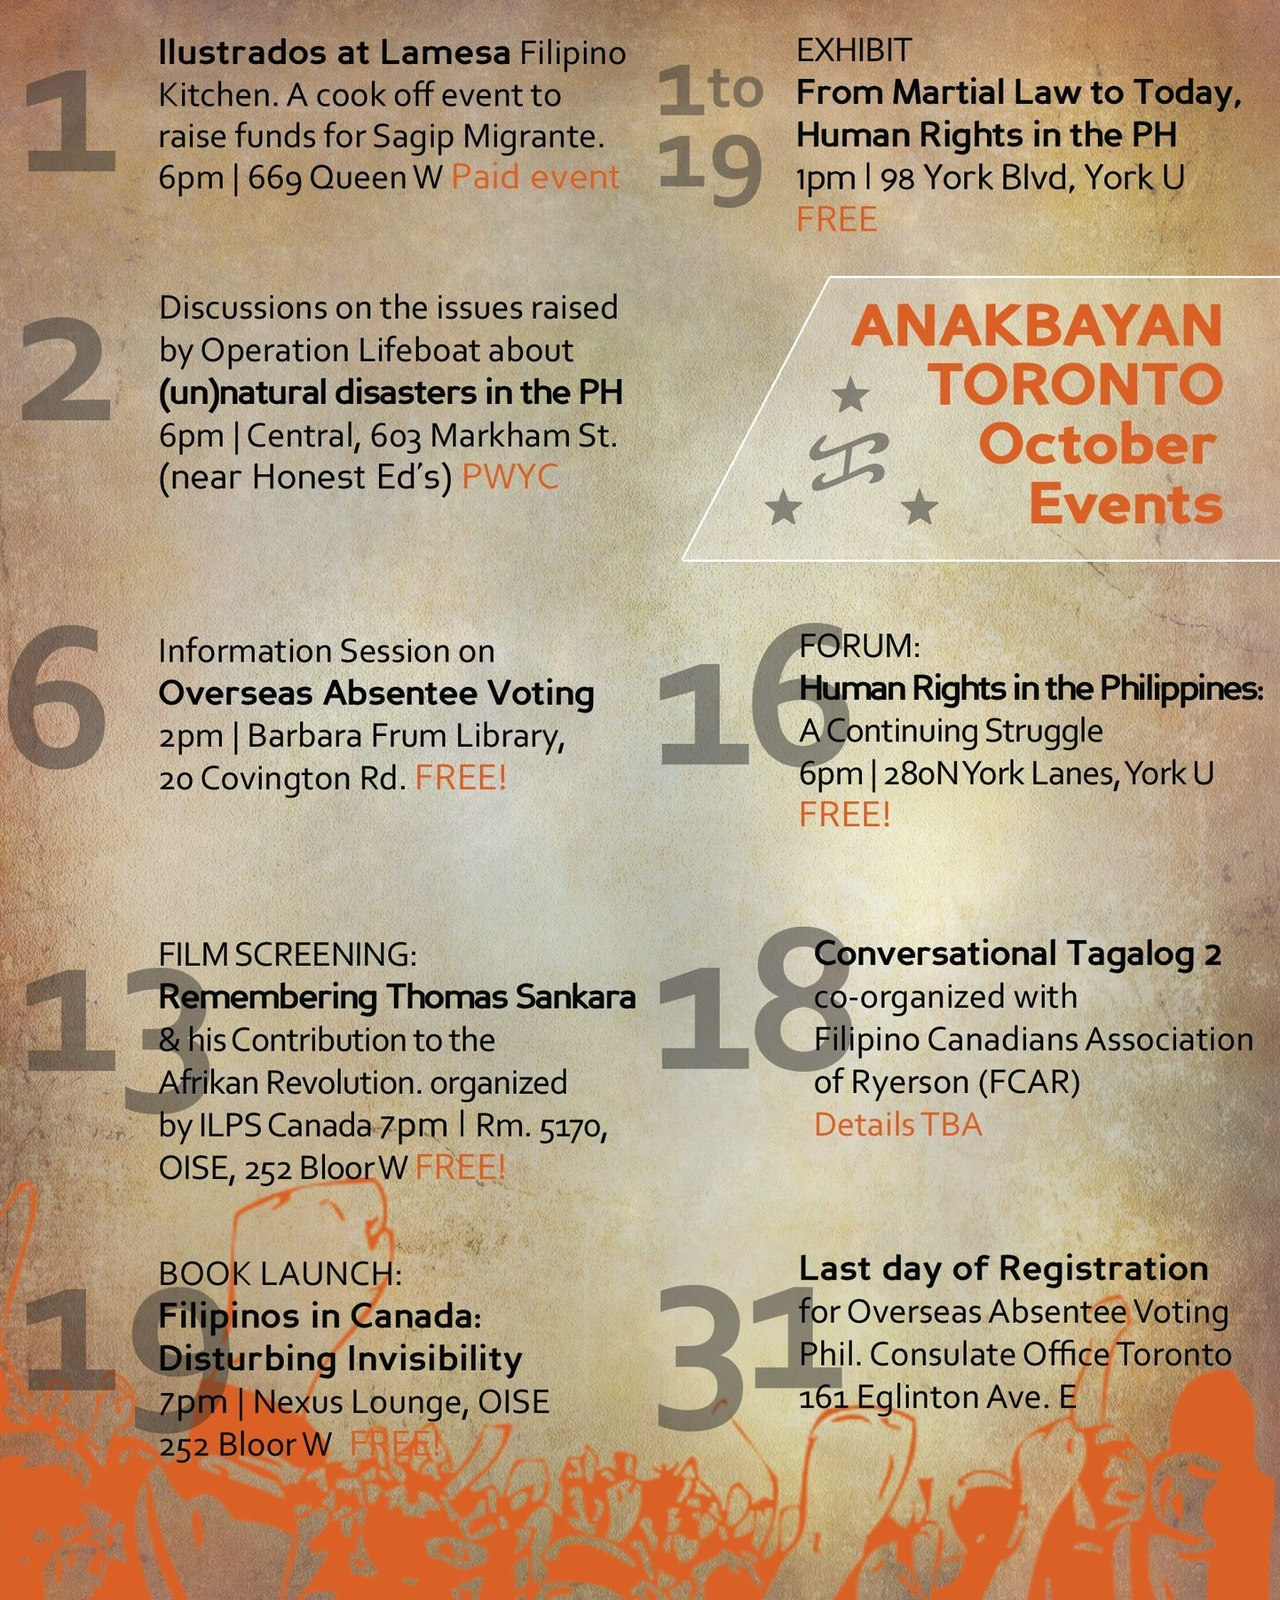 ANAKBAYAN-TORONTO events in October 2012!Some FB event pages for the next couple weeks:Oct 3, 630p:  Operation Lifeboat: Linking Canada and The Philippines via (Un)Natural DisastersOct 2-19:  Free Public Exhibition @ York University: From Martial Law to Today, Human Rights in the PhilippinesOct 16, 6p:  Human Rights in the Philippines: A Continuing Struggle